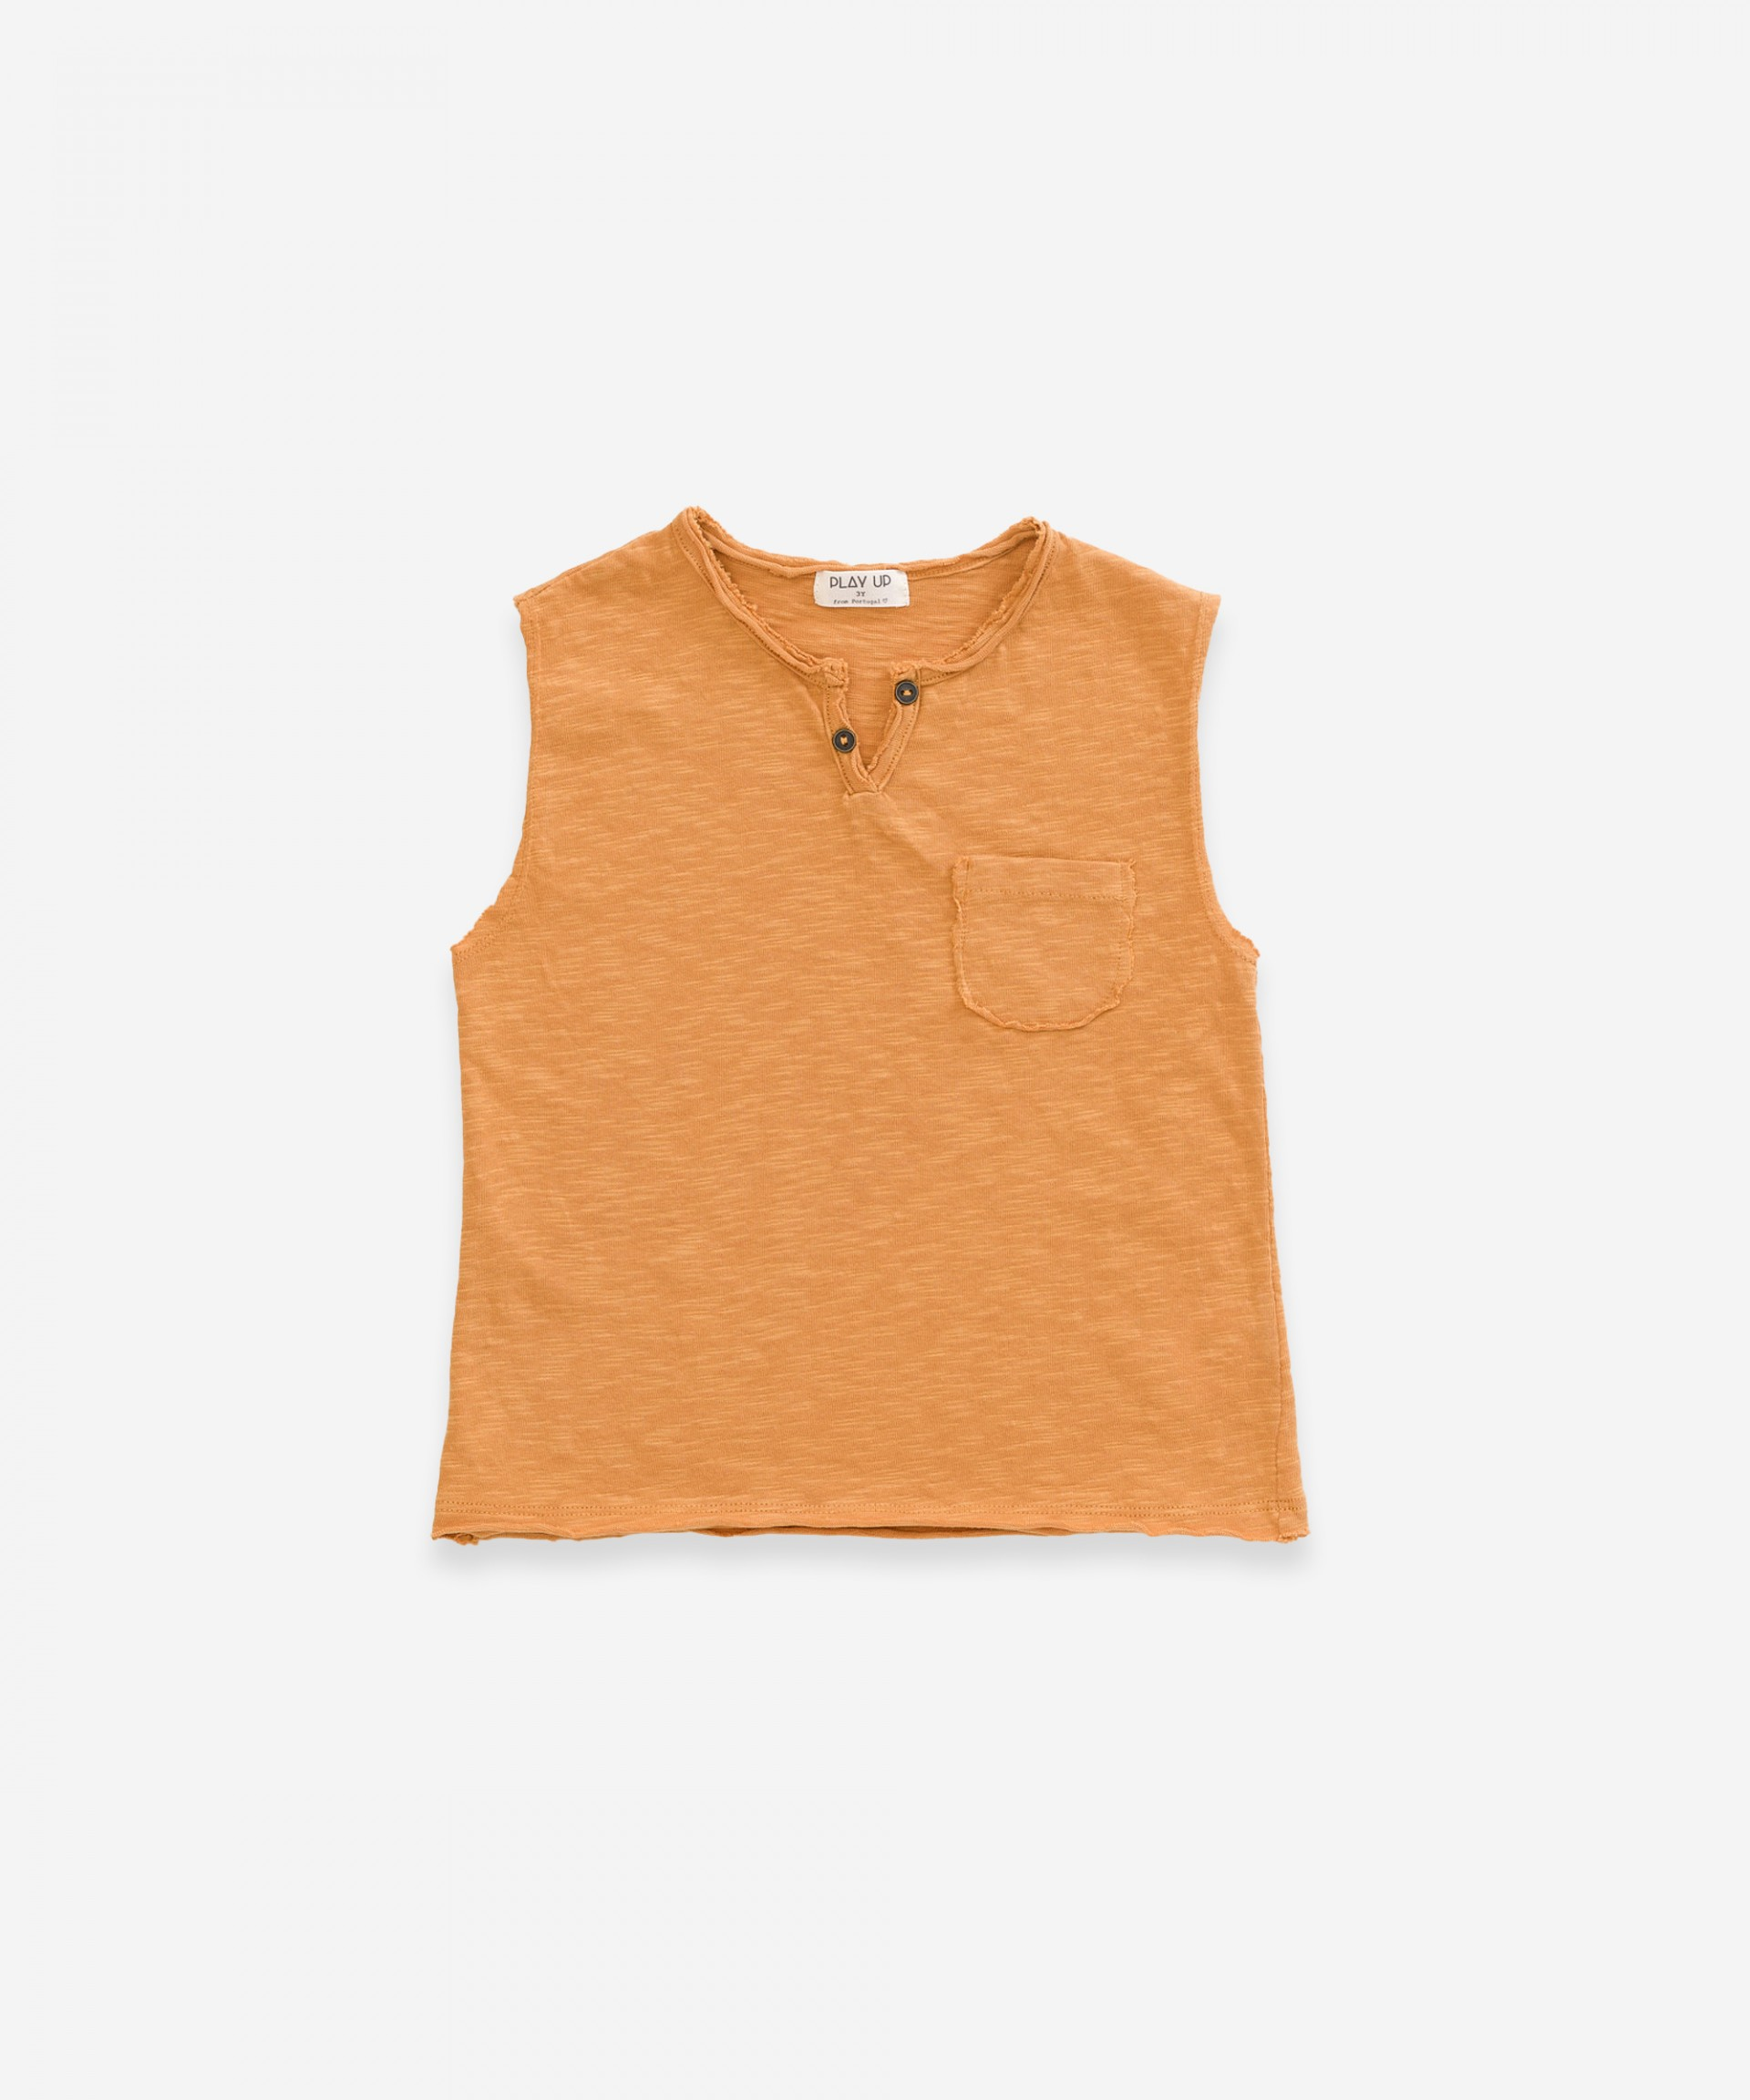 Sleeveless t-shirt in organic cotton | Weaving